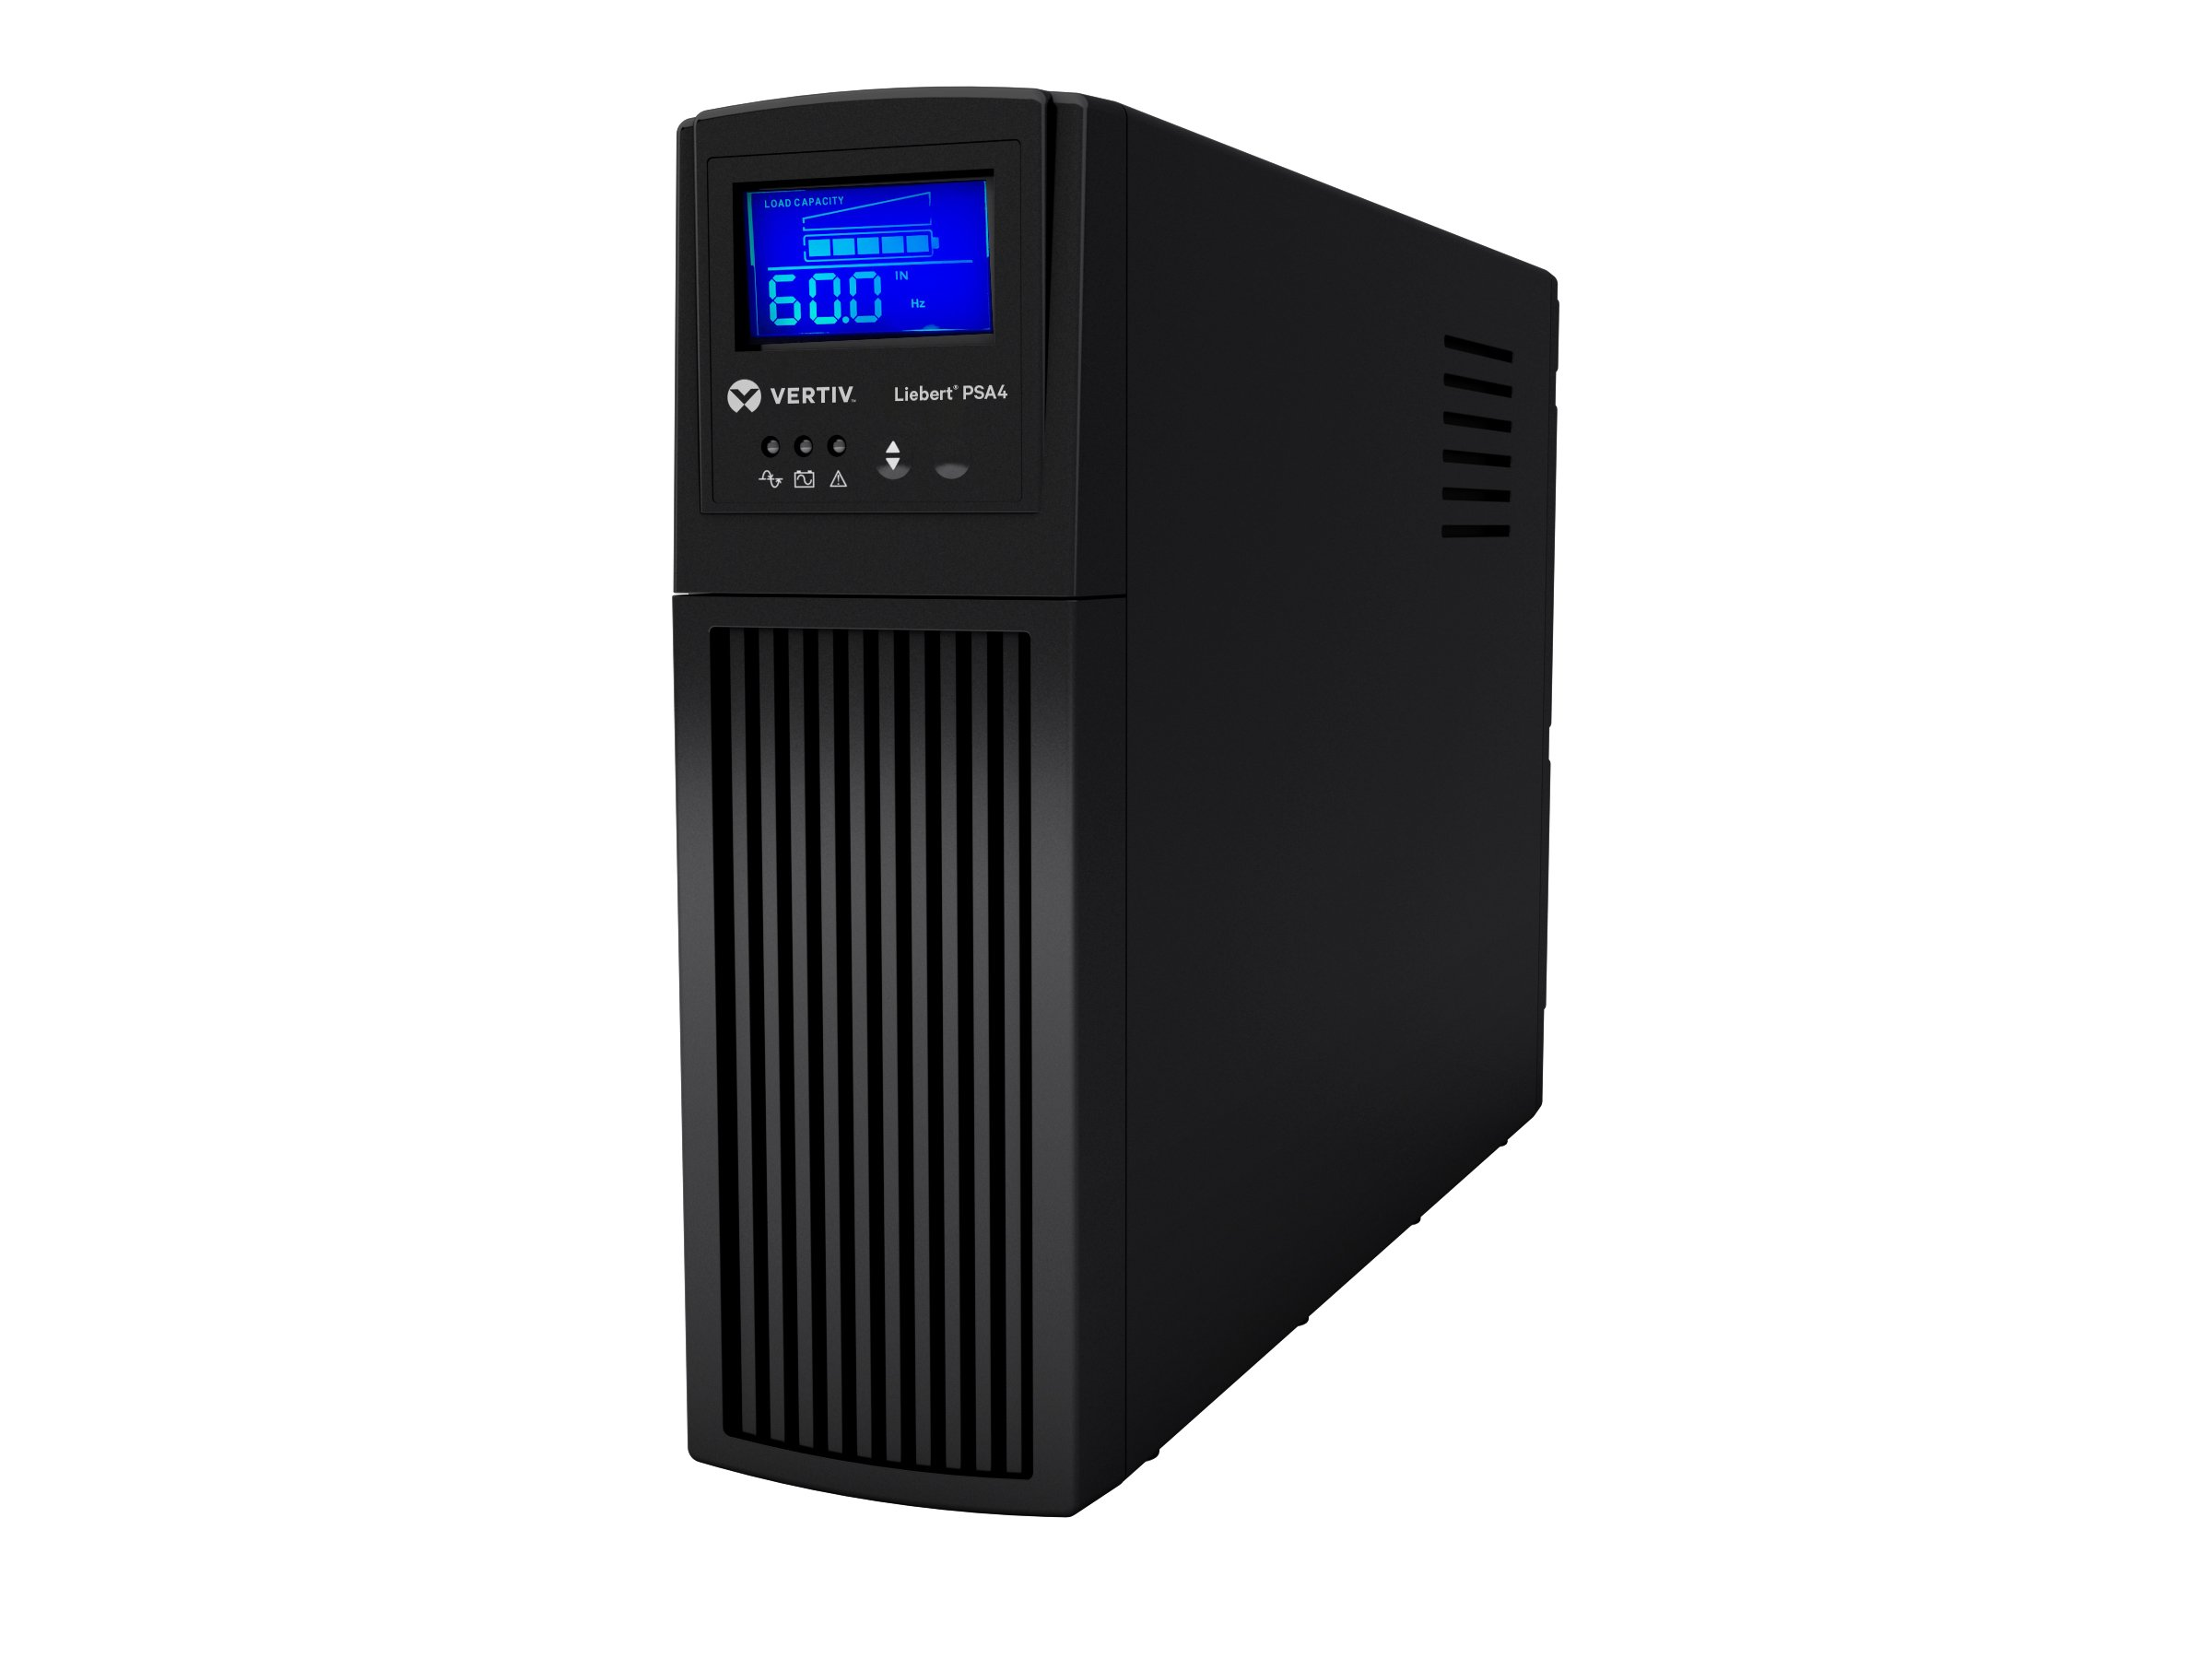 Liebert 1500VA 900W LCD UPS Mini-Tower Battery Backup & Surge Protection, 3 Year Warranty (PSA4-1500MT120)